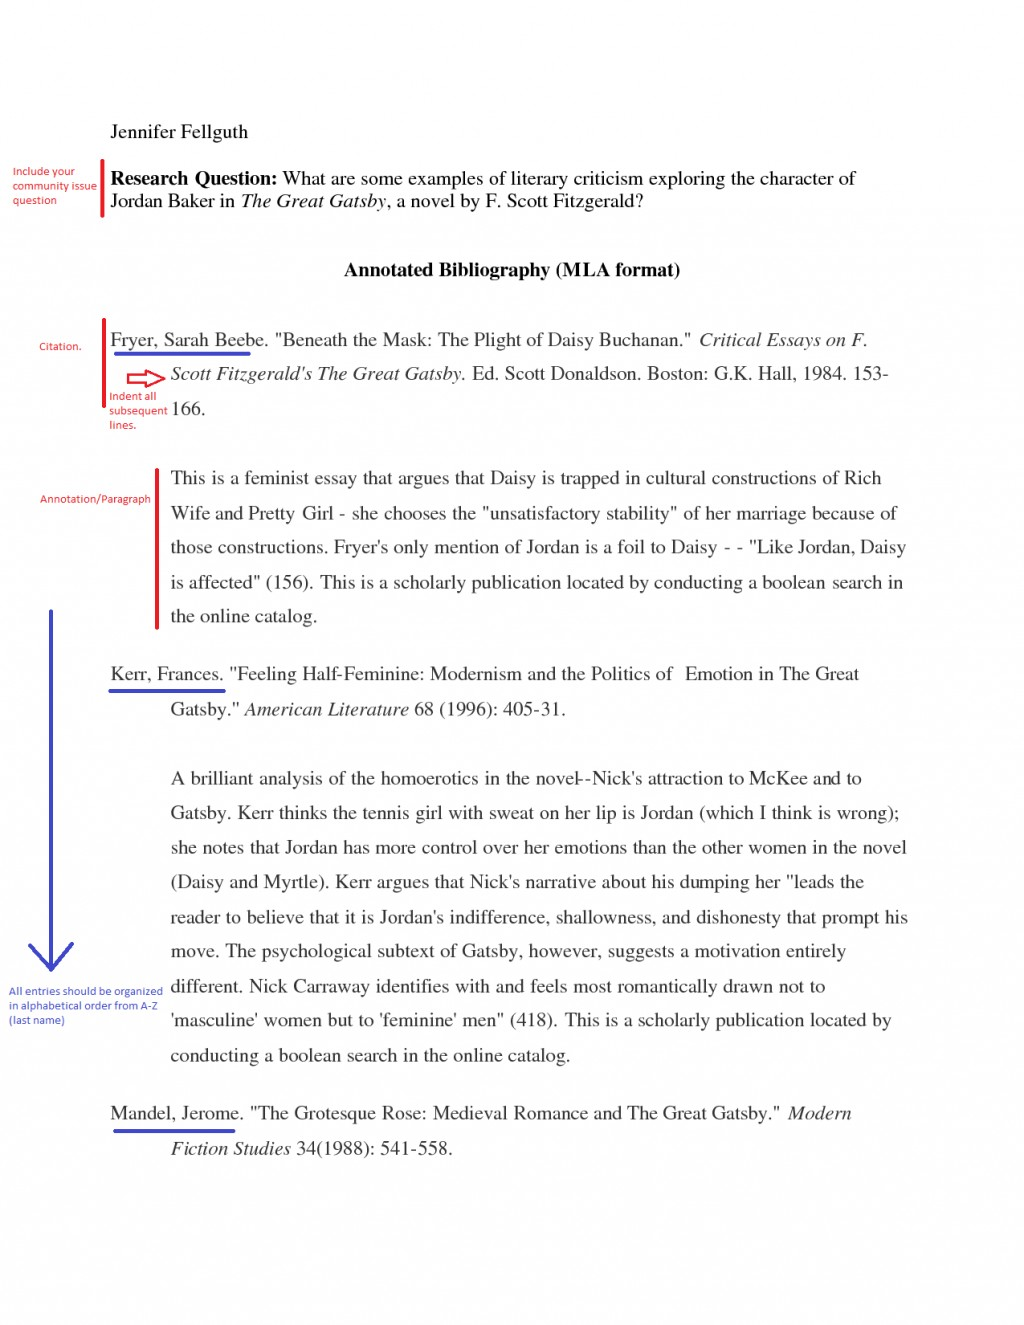 009 Citing An Essay How To Cite Images In Mla Format Did You Know Annotatedbibsampleanno Write My Prices Wonderful A Critical Book Your Own 8th Edition Large